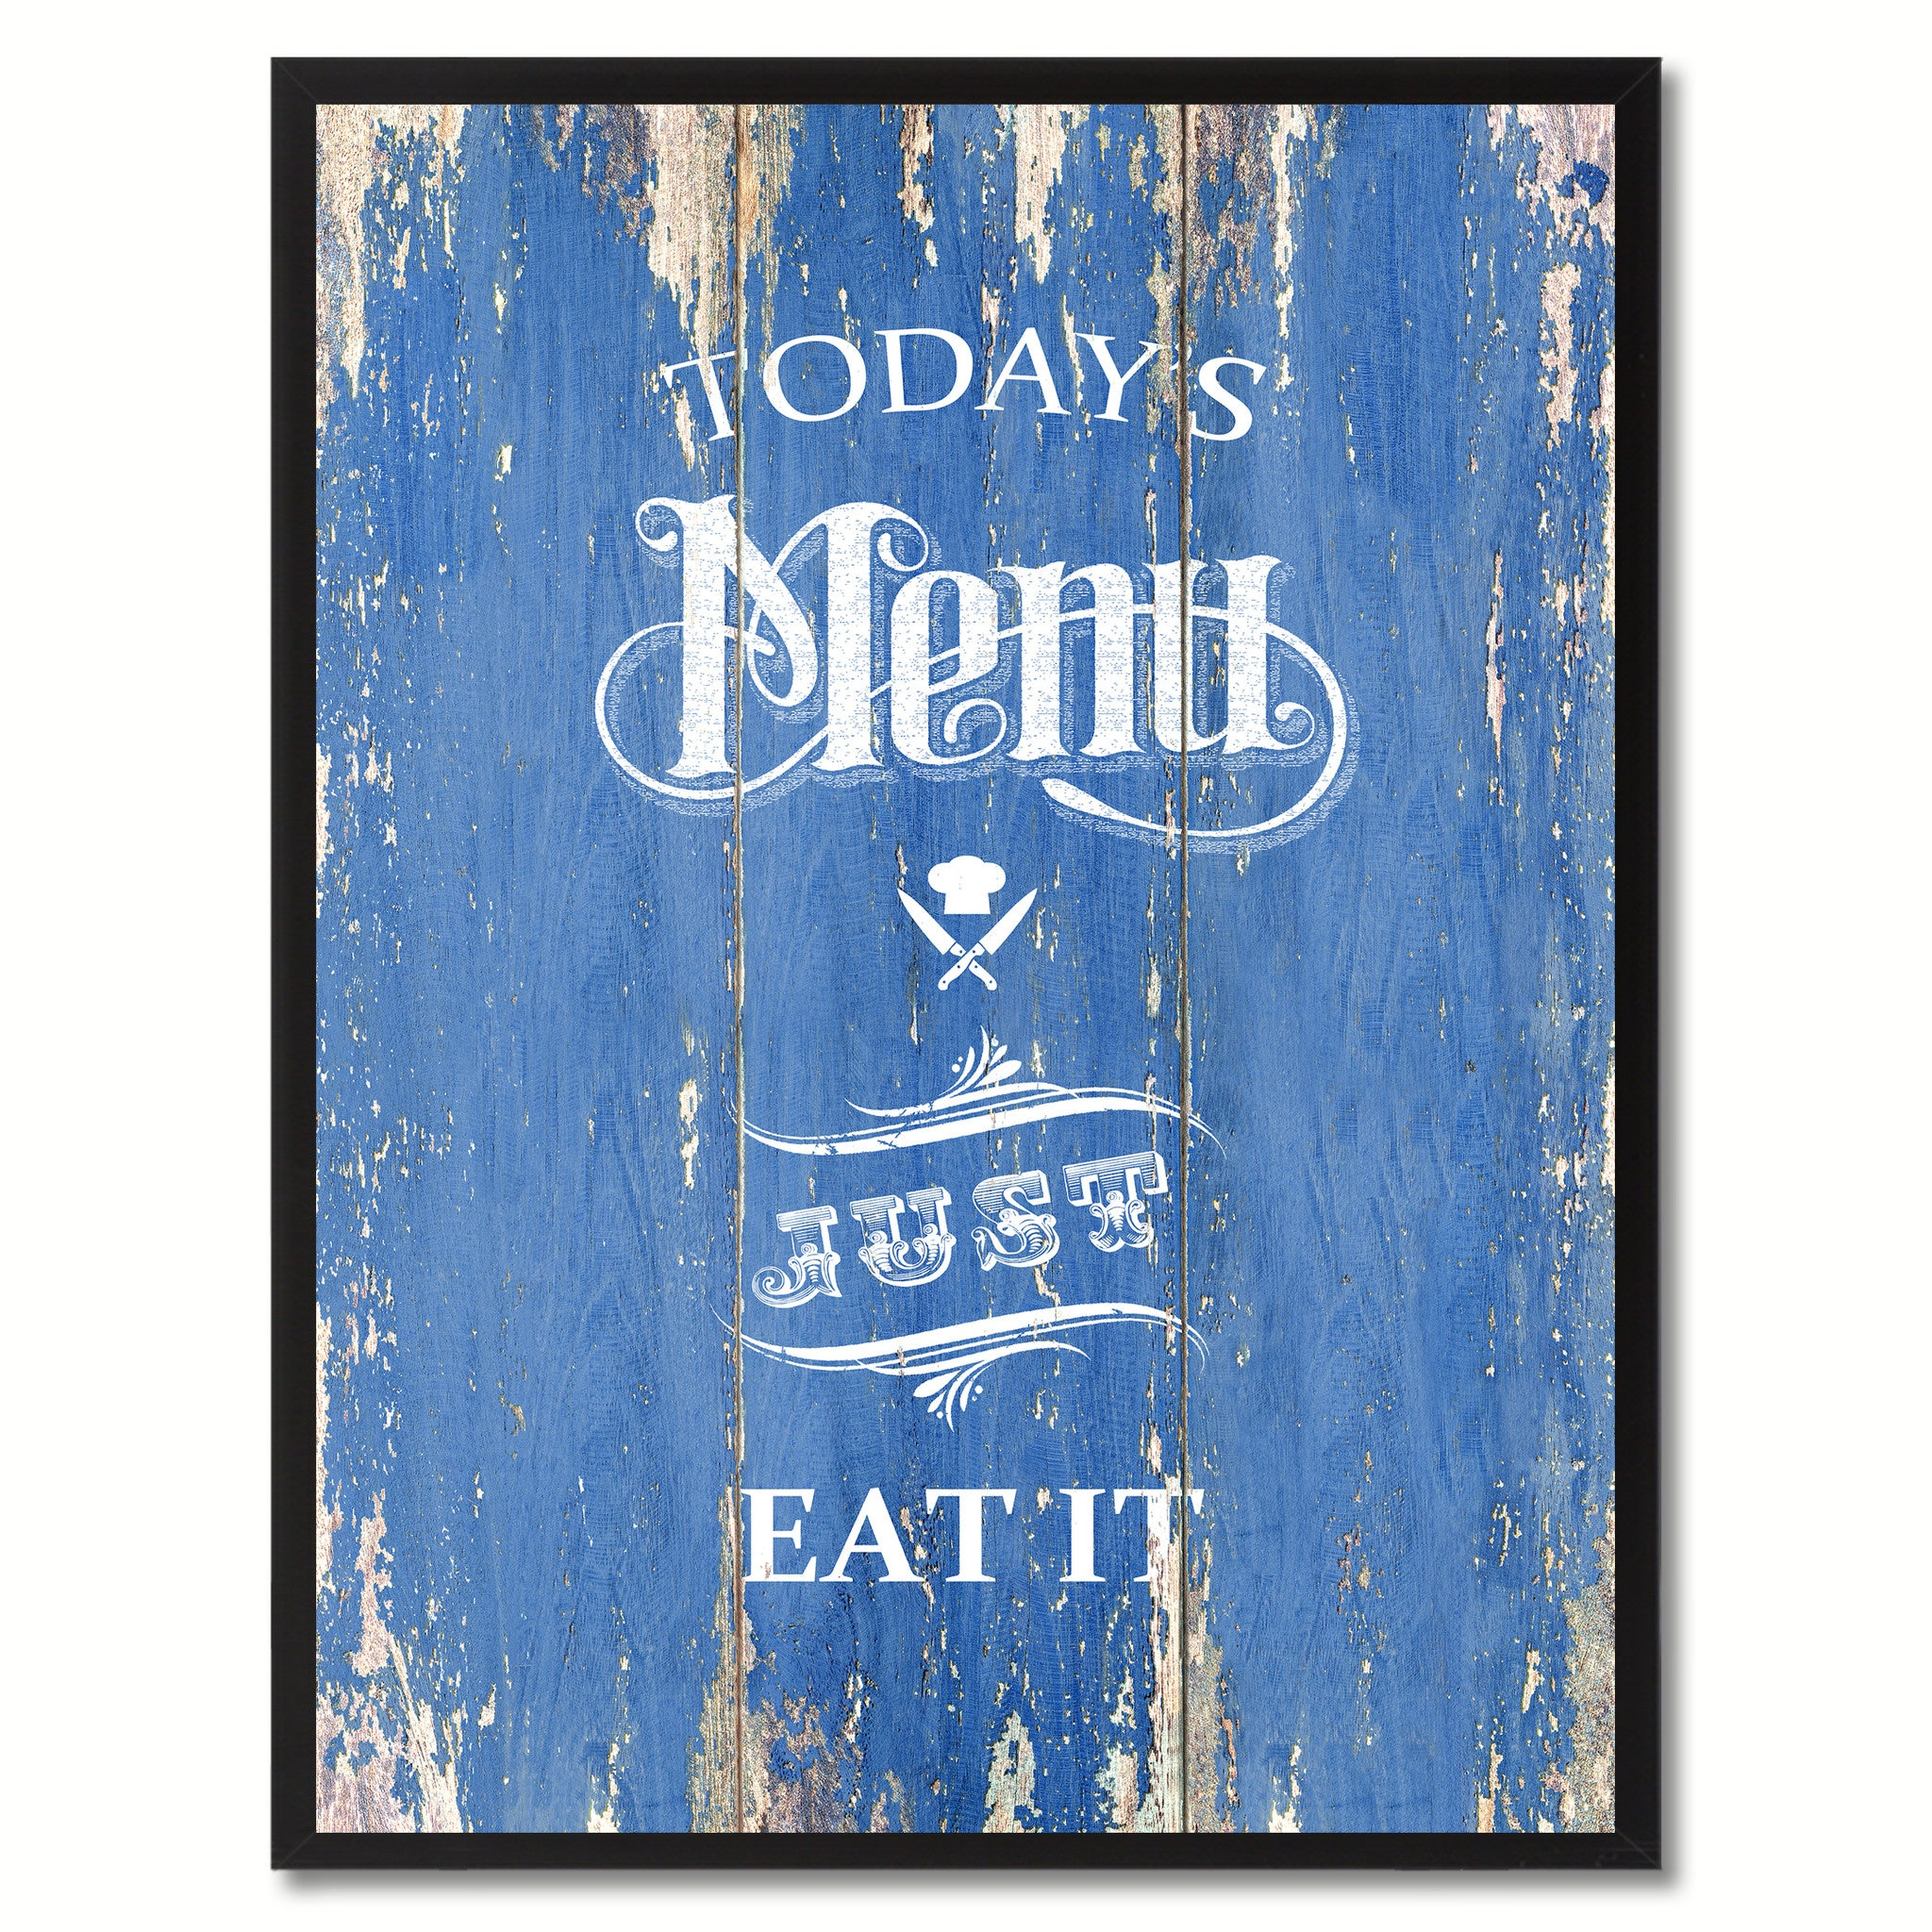 Today's menu just eat it Quote Saying Canvas Print with Picture Frame Home Decor Wall Art, Blue